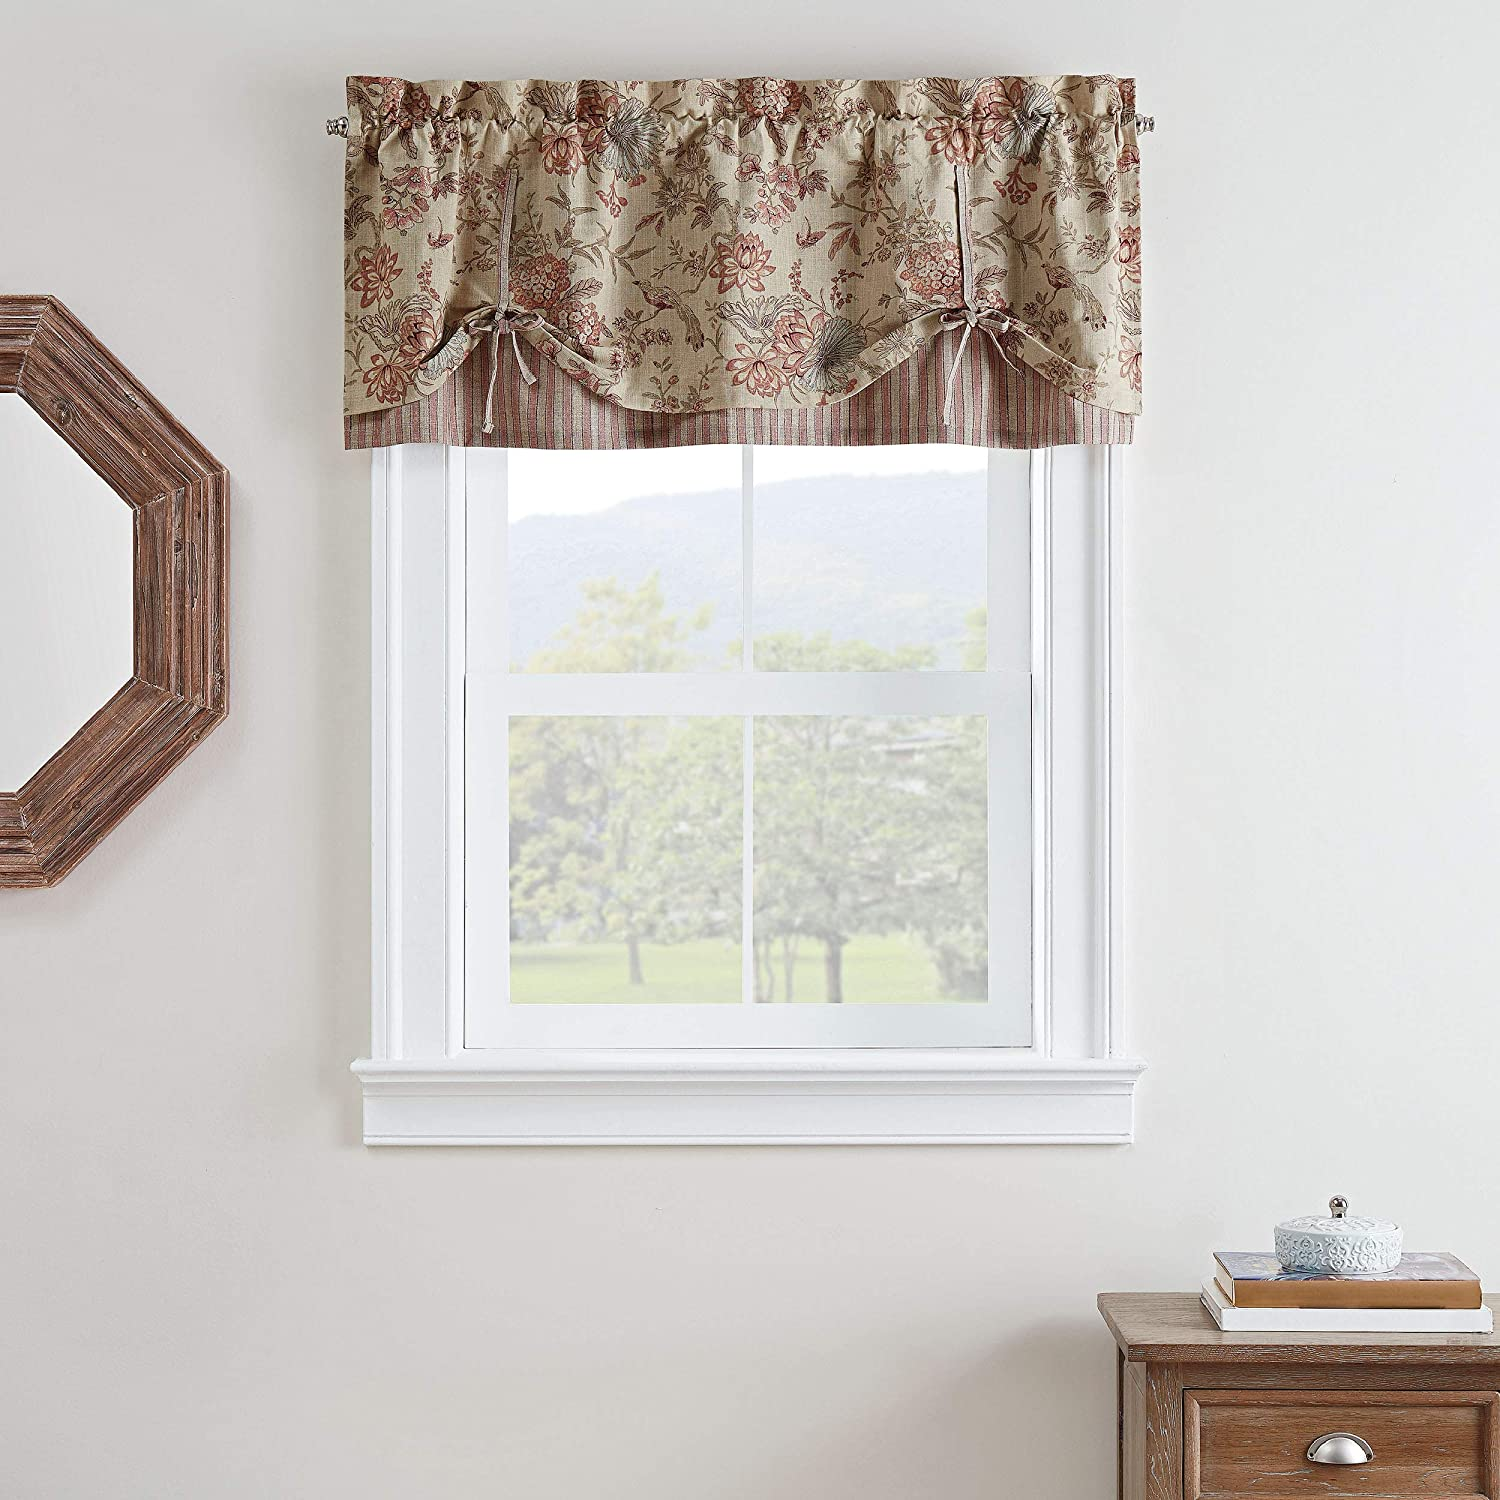 "Waverly Lucchese Short Valance Small Window Curtains Bathroom, Living Room and Kitchens, 52"" x 18"", Giardino"